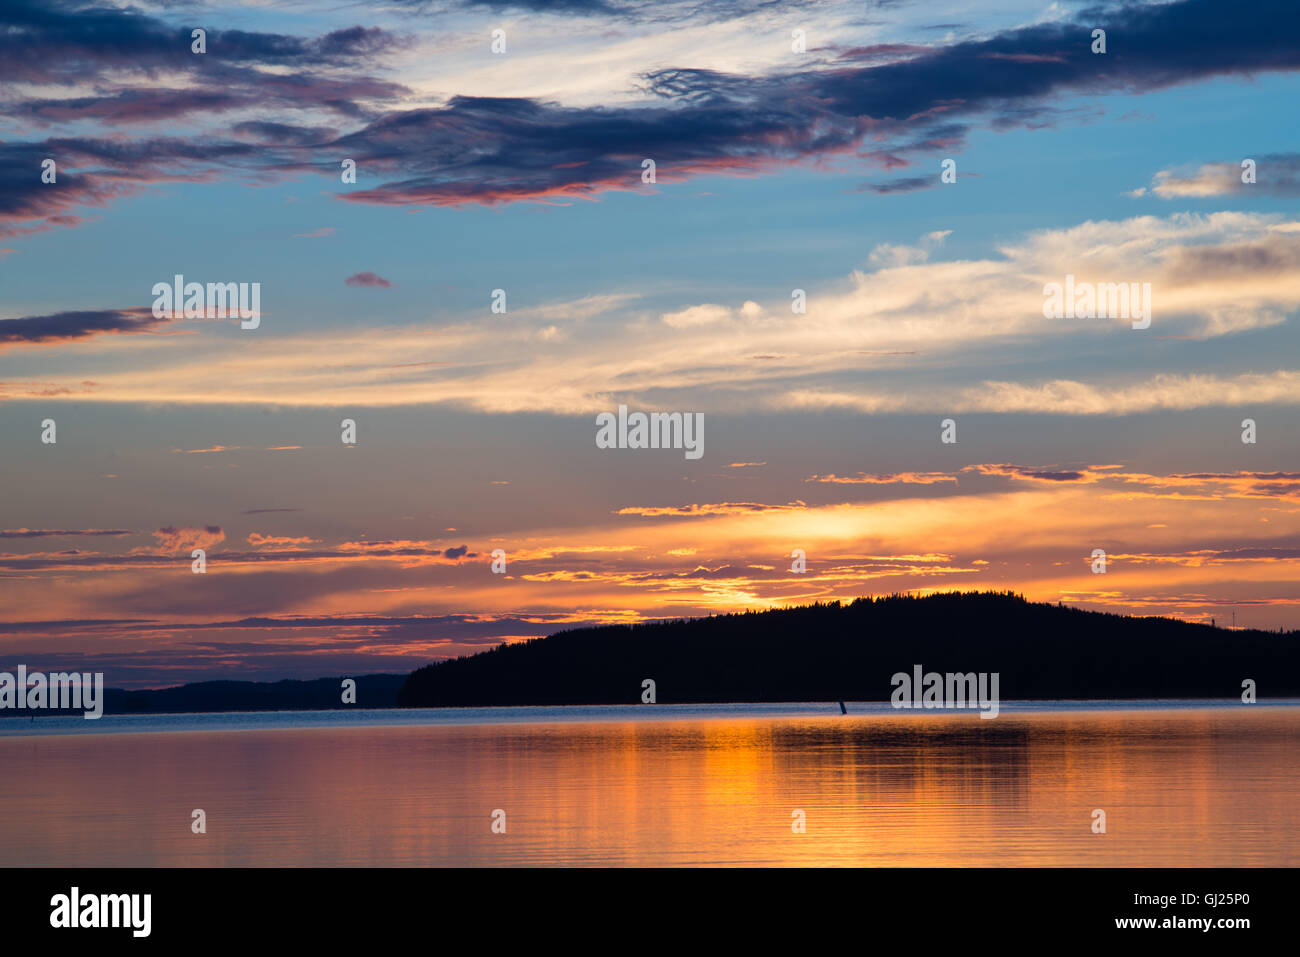 Colorful clouds at sunset - Stock Image